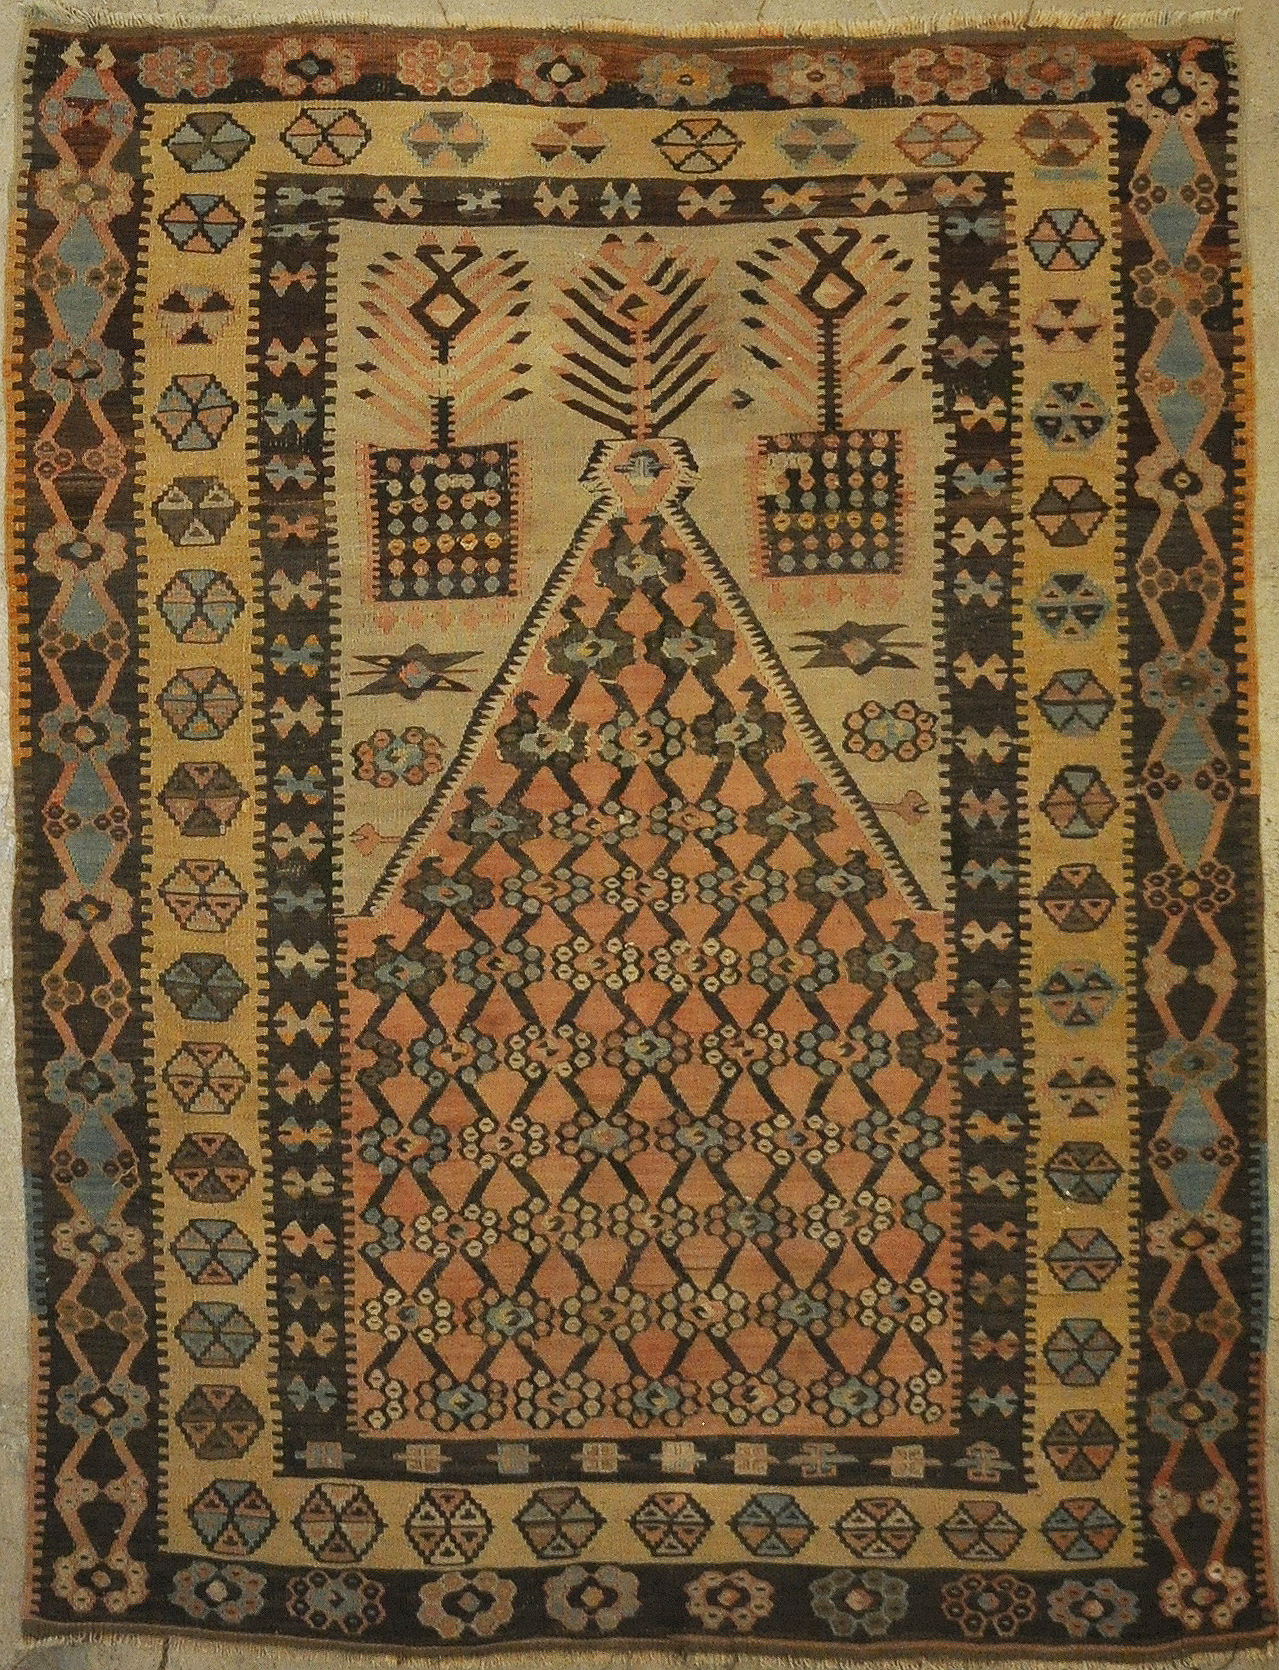 Antique Prayer Turkish Rug